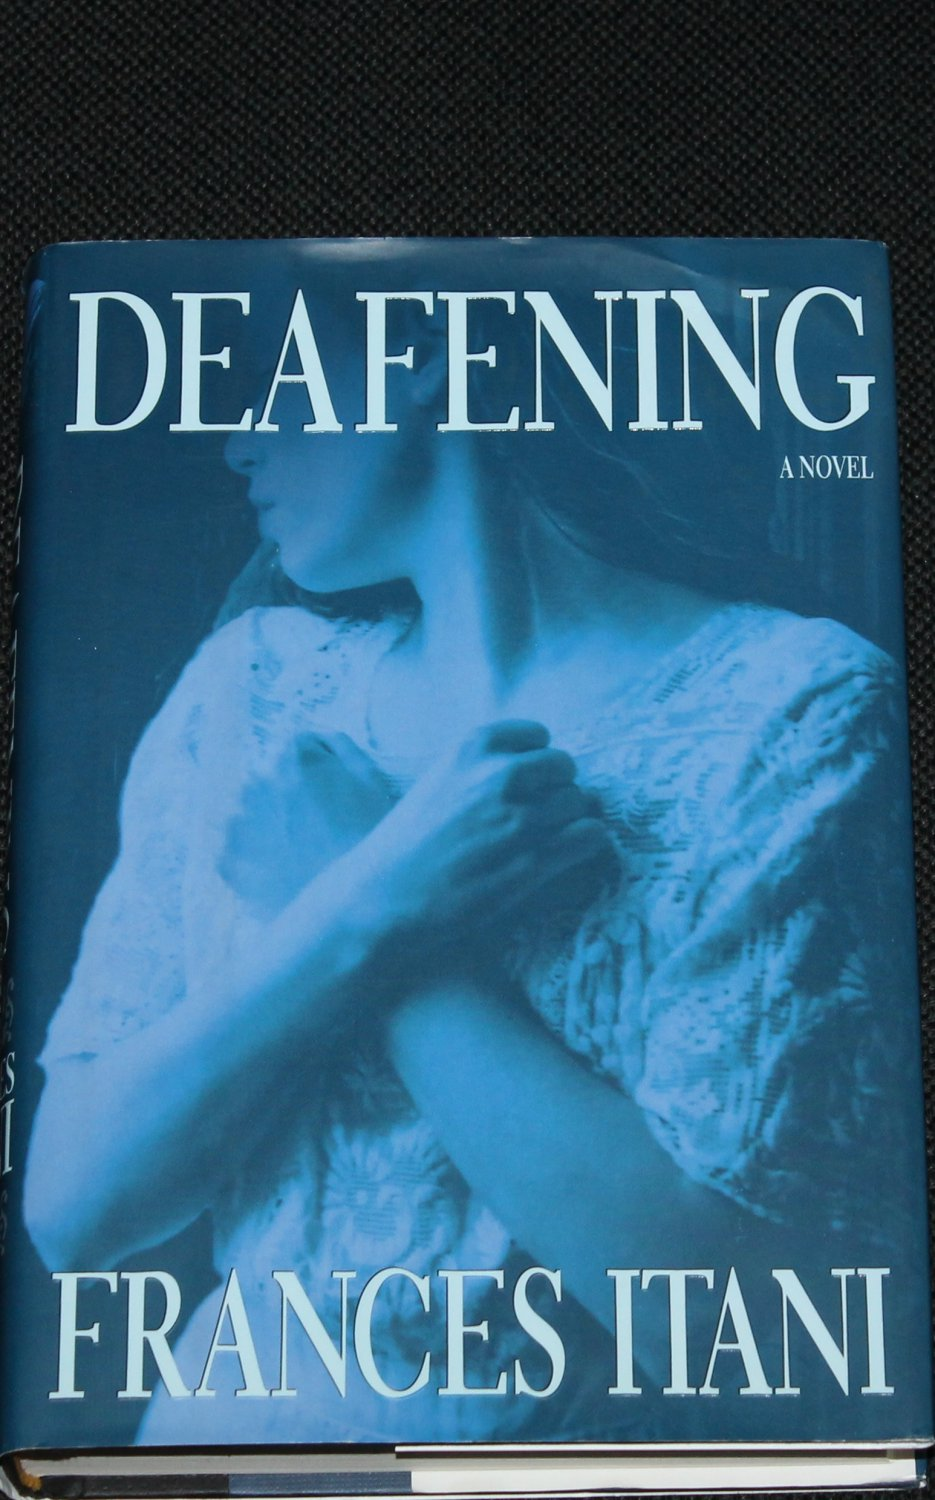 The Deafening historical literary fiction - novel book story by Frances Itani